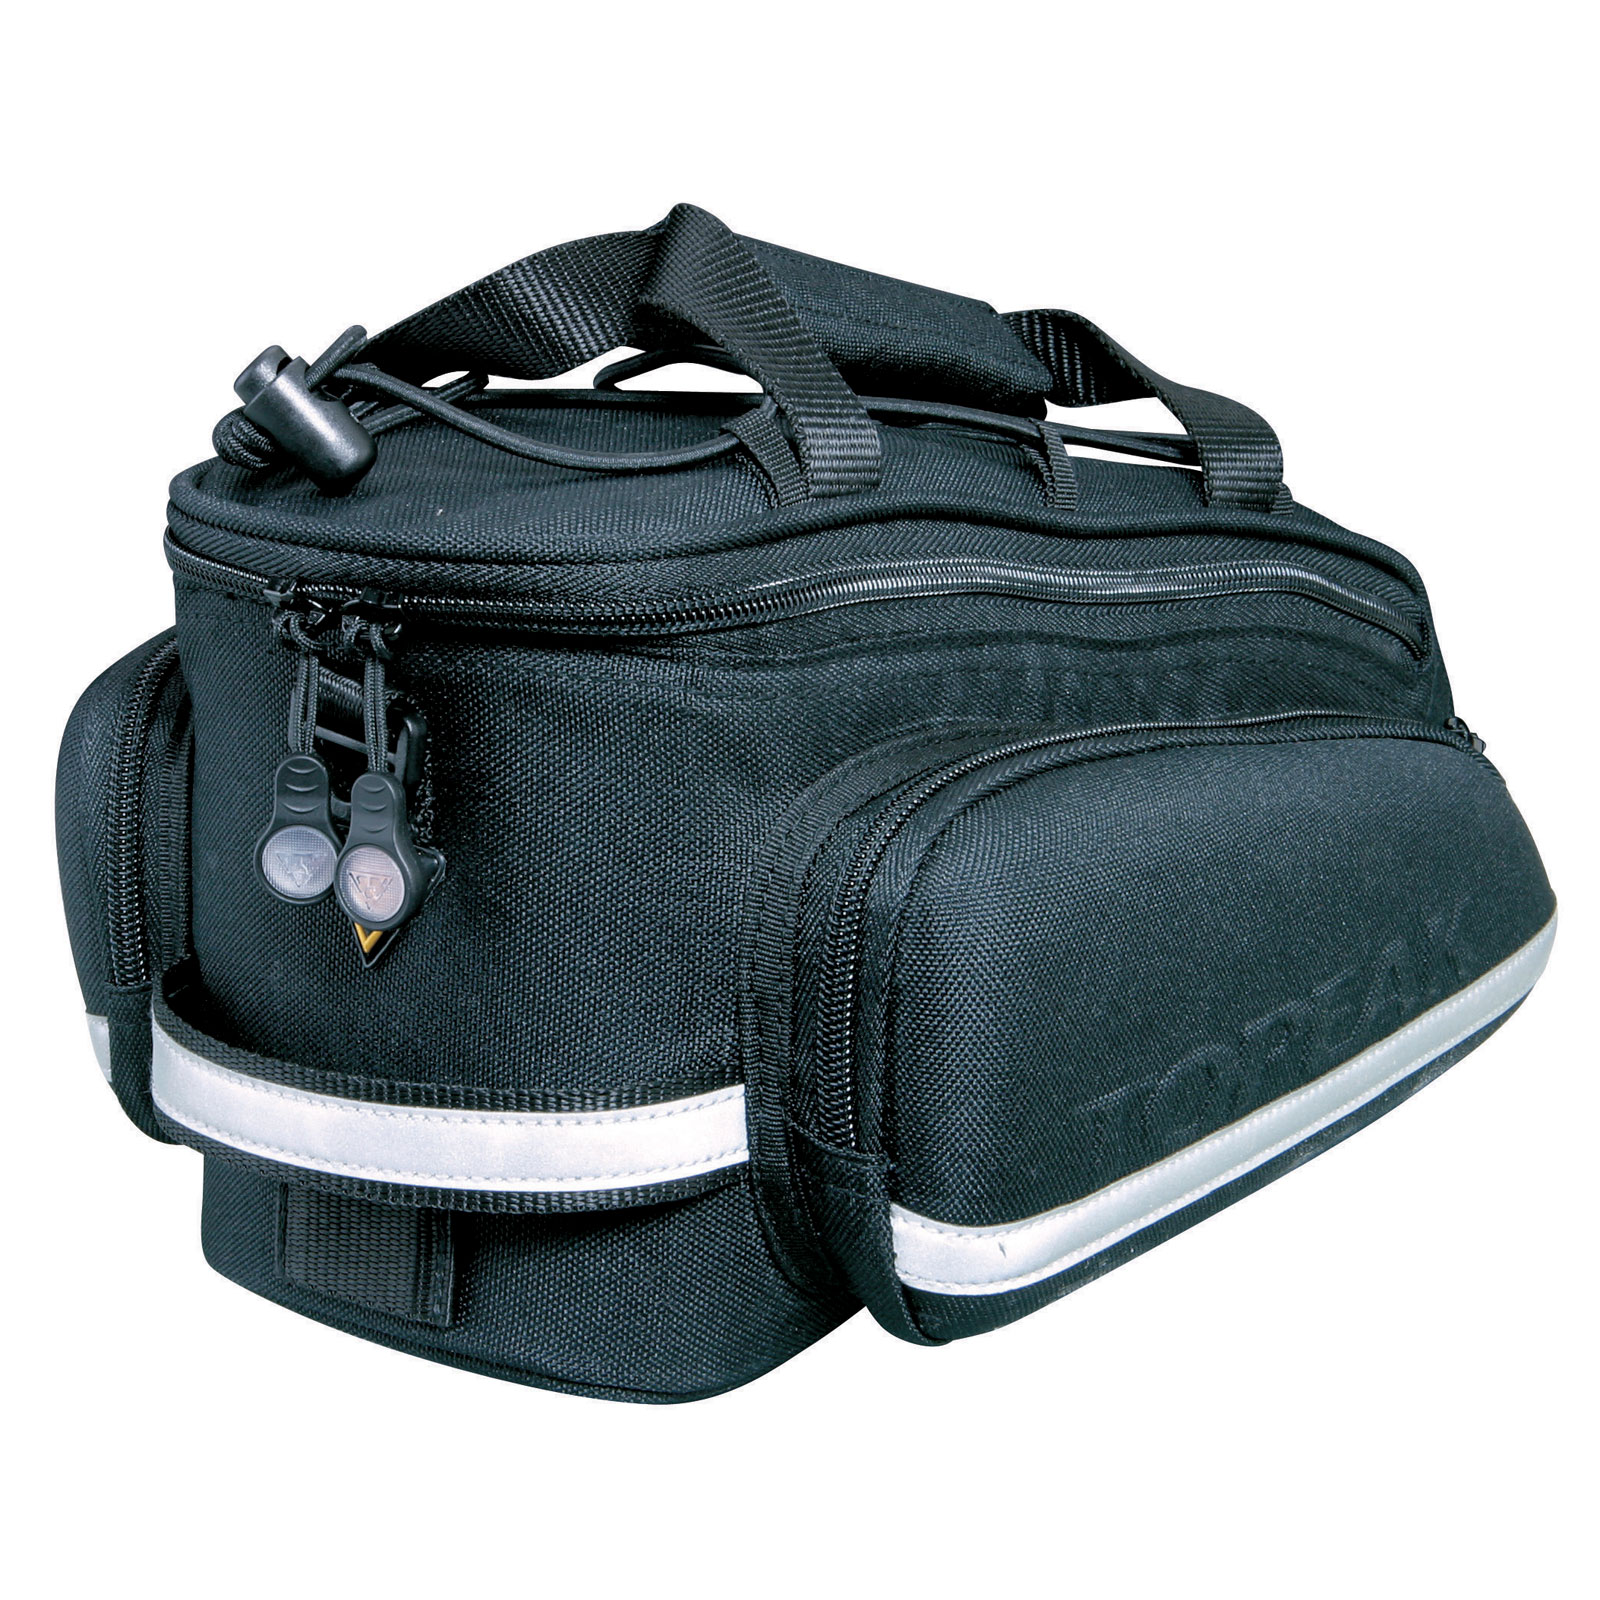 Topeak RX TrunkBag DXP High Capacity Rear Rack Bike Bag With Pannier Bags, Strap